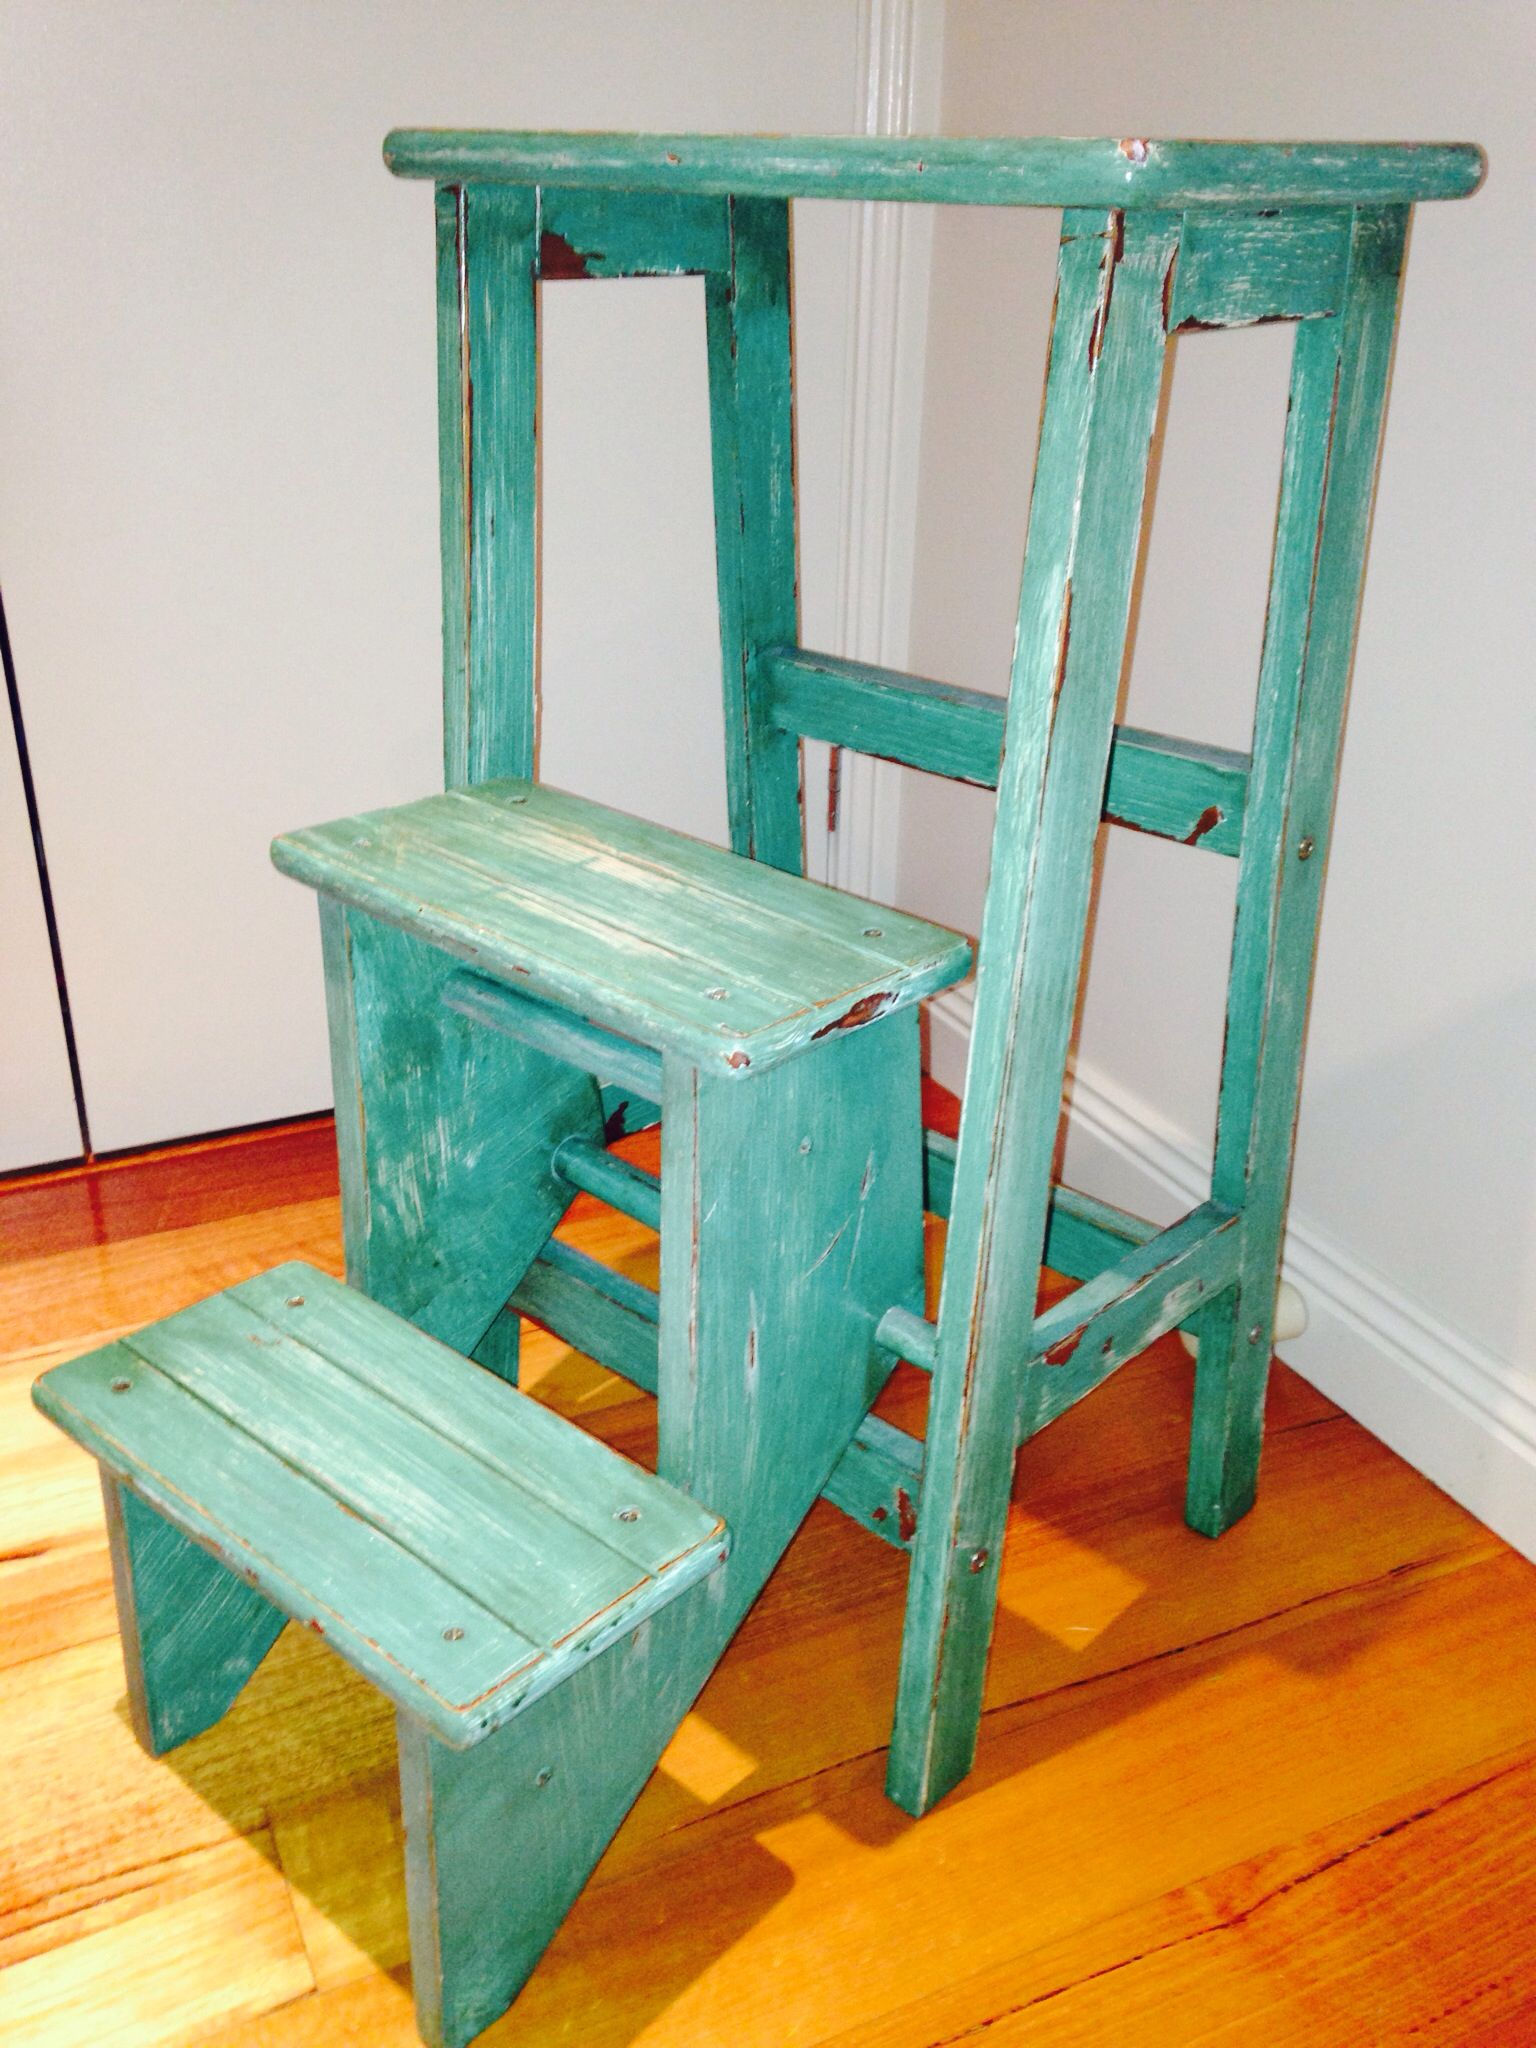 Refurbished shabby chic/French country step stool | Kitchen crafts ...